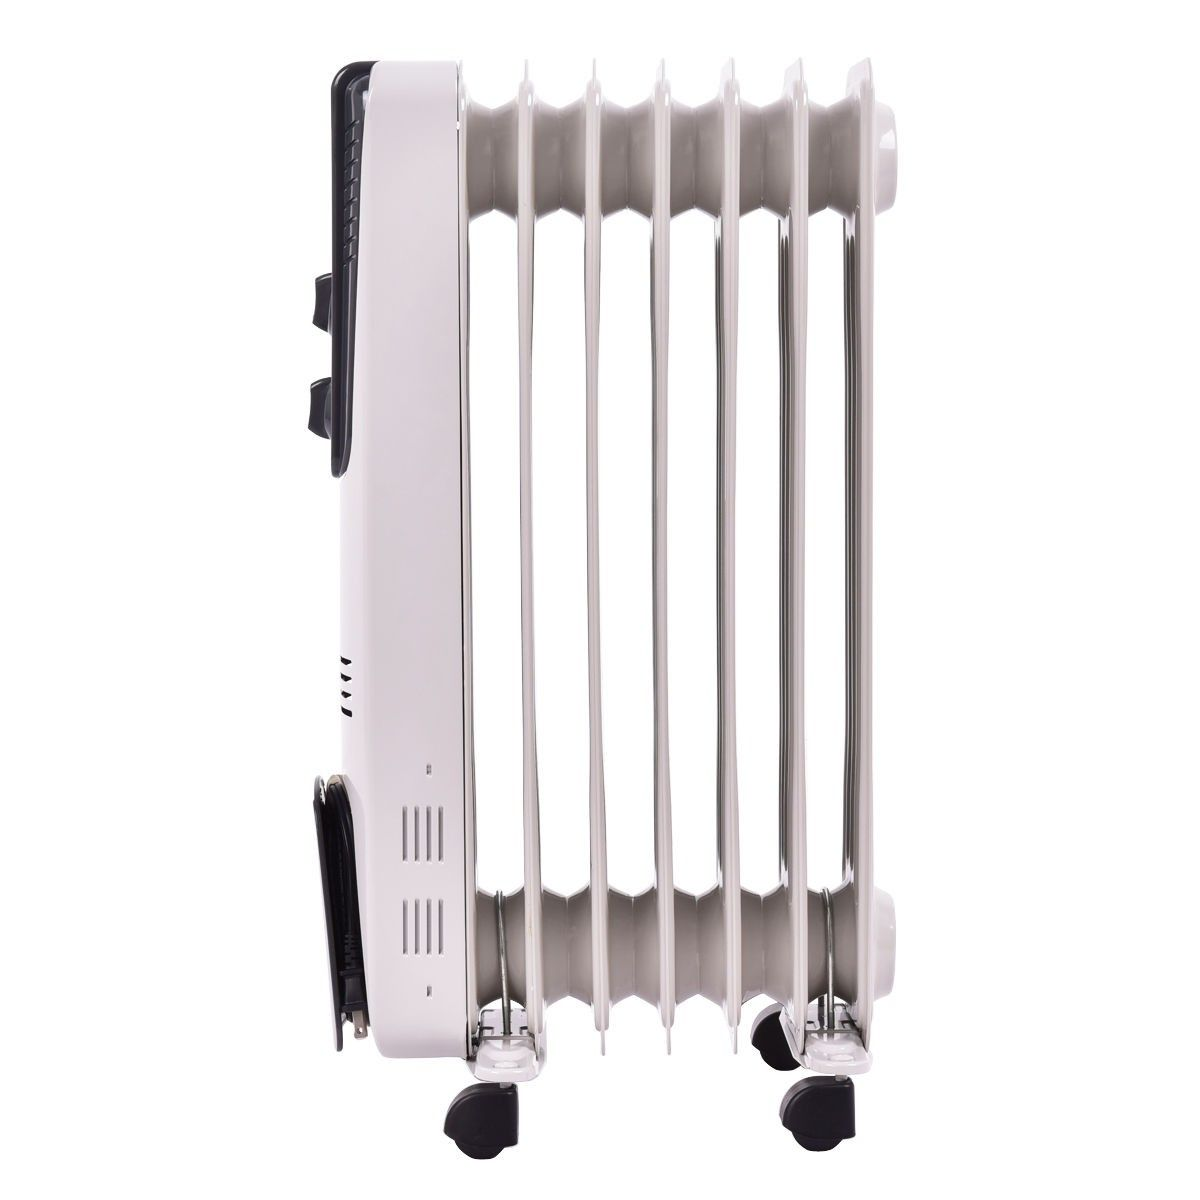 1500w Electric Oil Filled Radiator Space Heater 5 7 Fin Thermostat Room Radiant Household Appliances Home Amp Oil Filled Radiator Space Heater Radiators